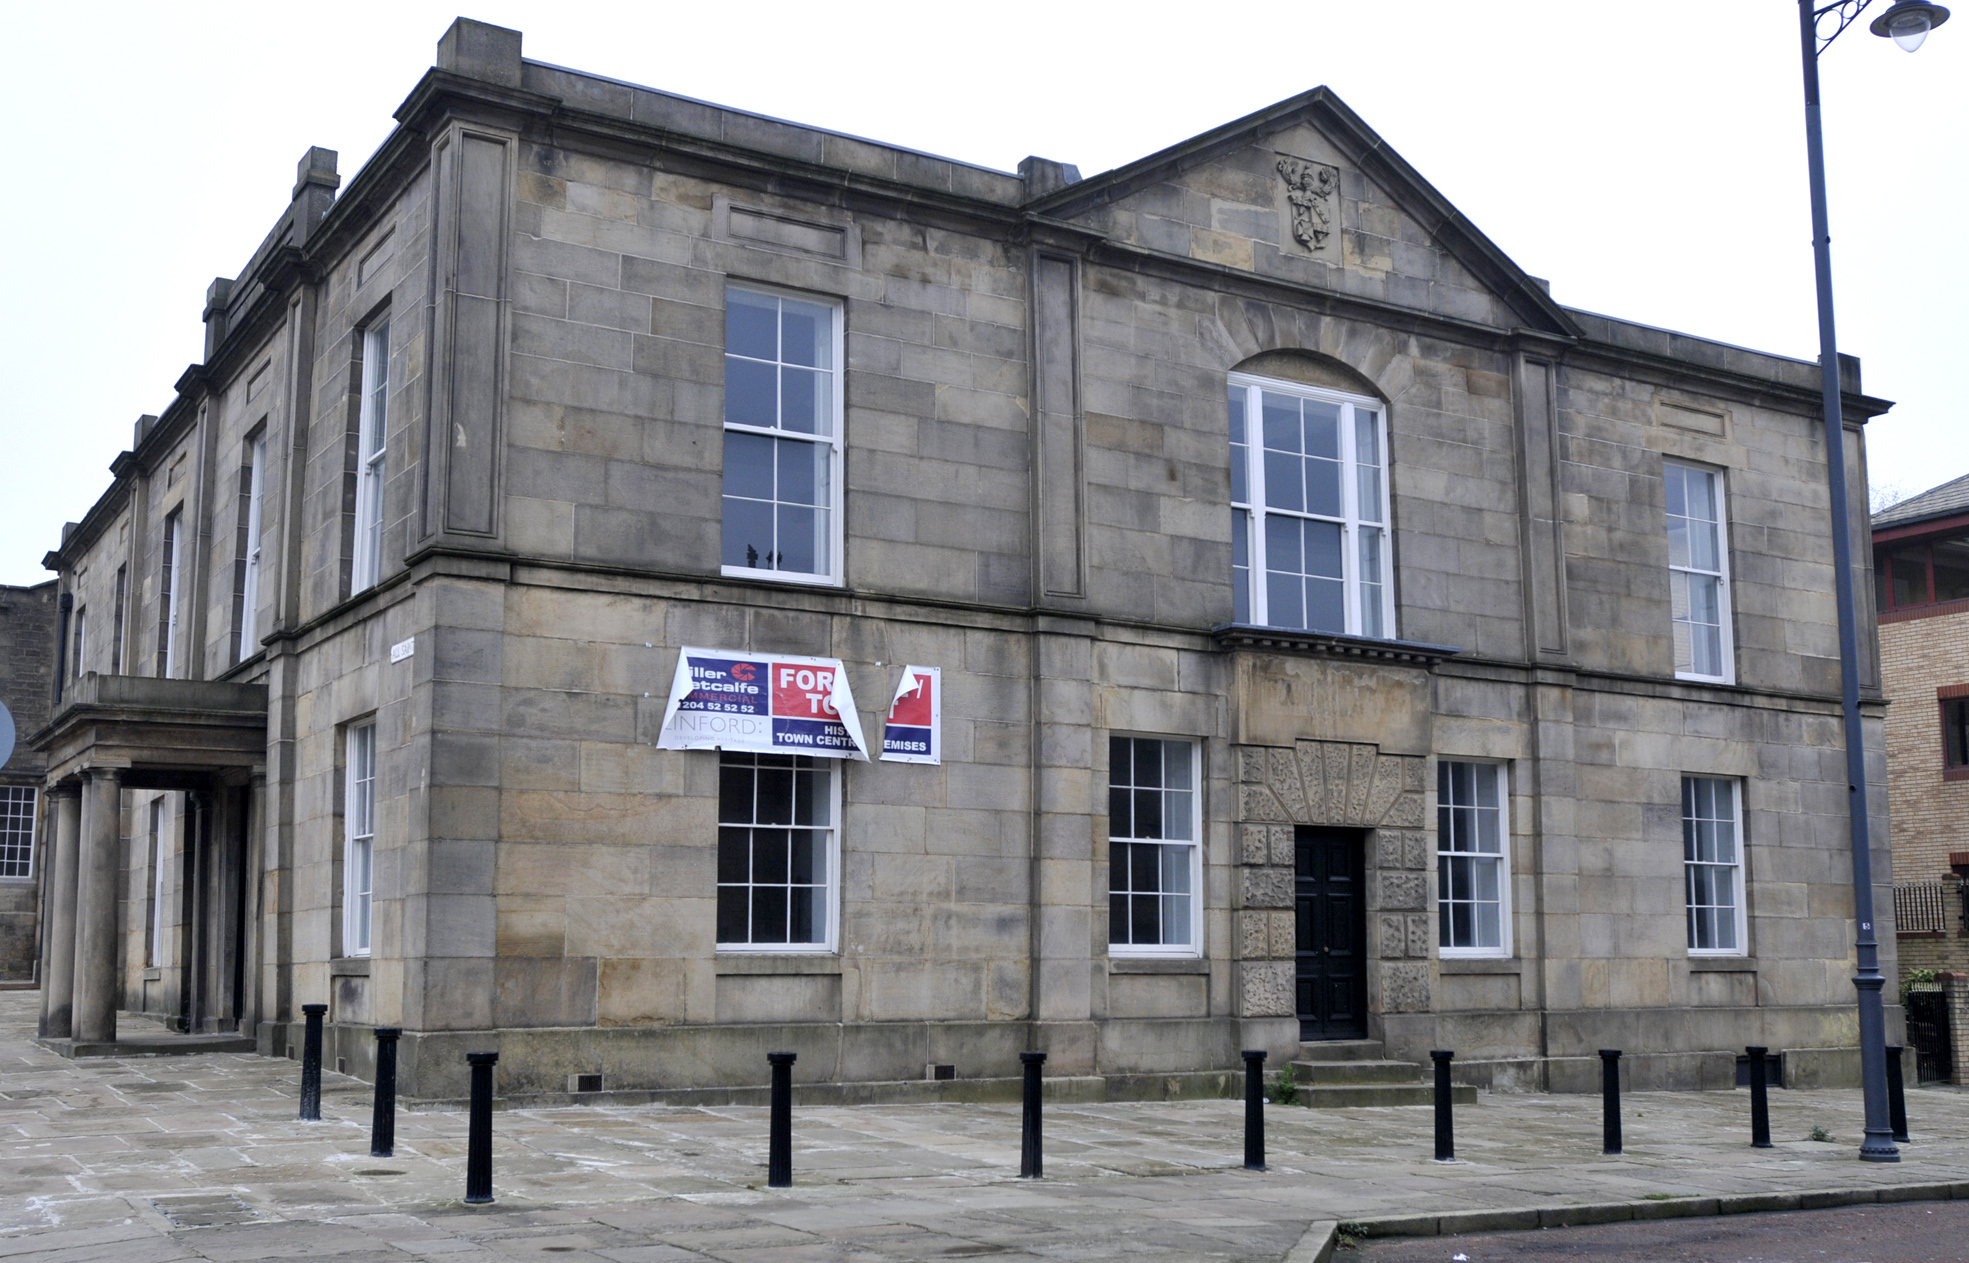 Bar and restaurant wanted for Little Bolton Town Hall redevelopment